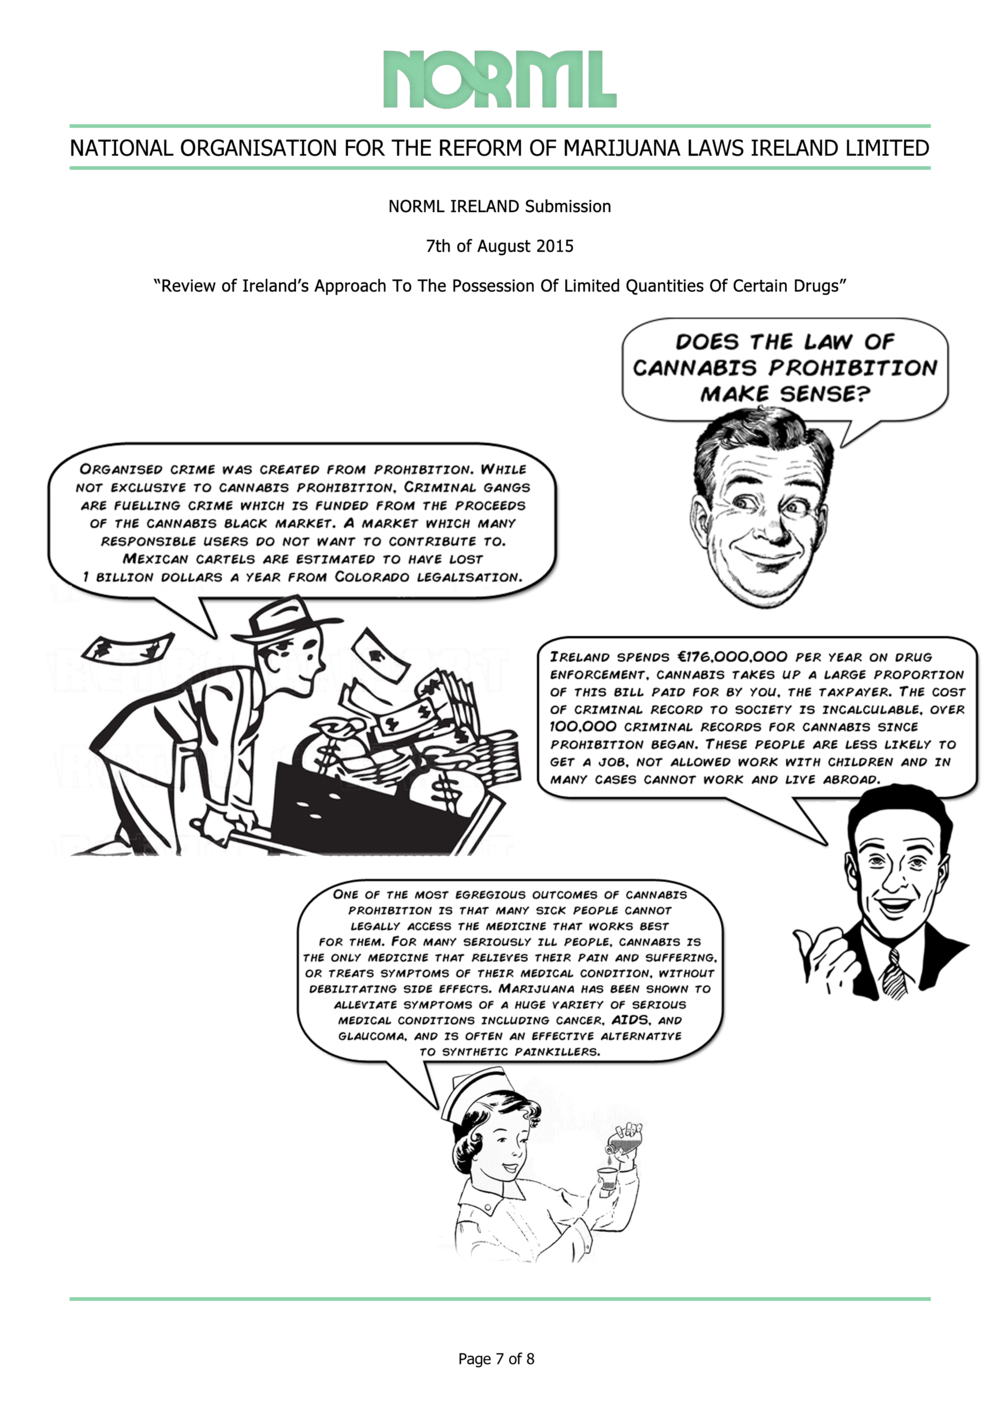 NORML Ireland Submission Page 7 of 8.png